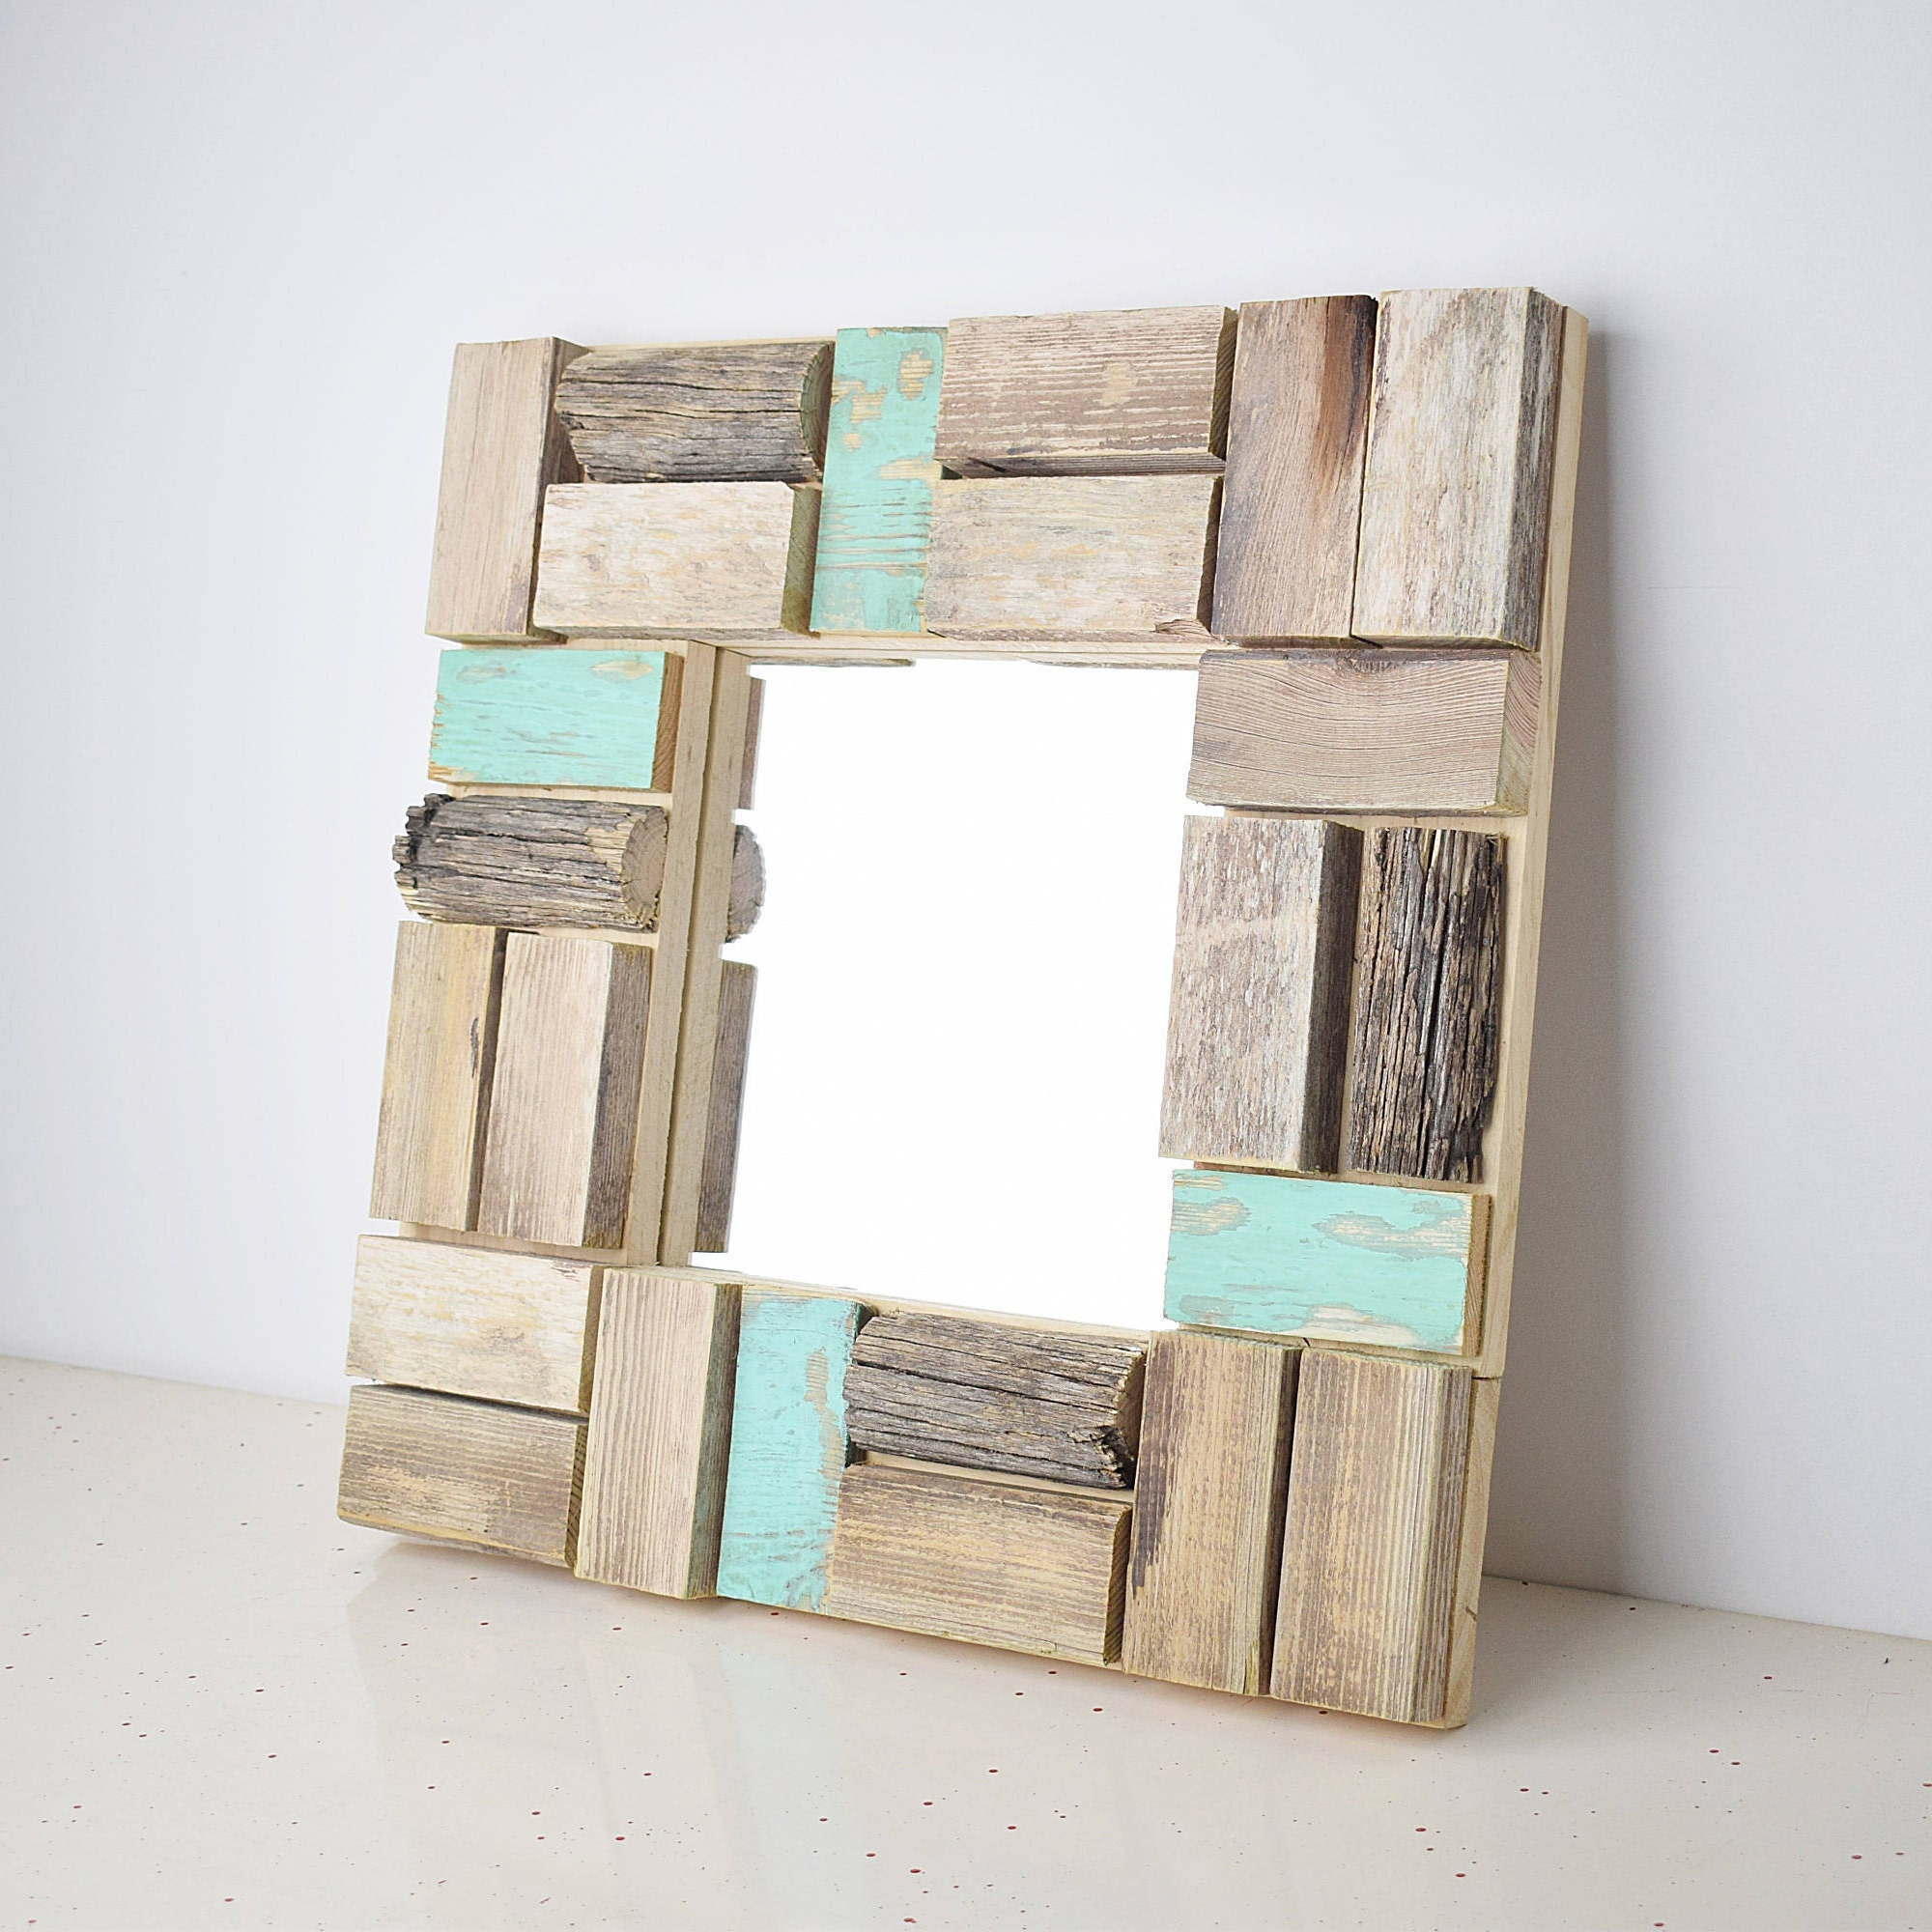 Situ. Mosaic mirror frame, turquoise blue, antiqued wood polygonal ...